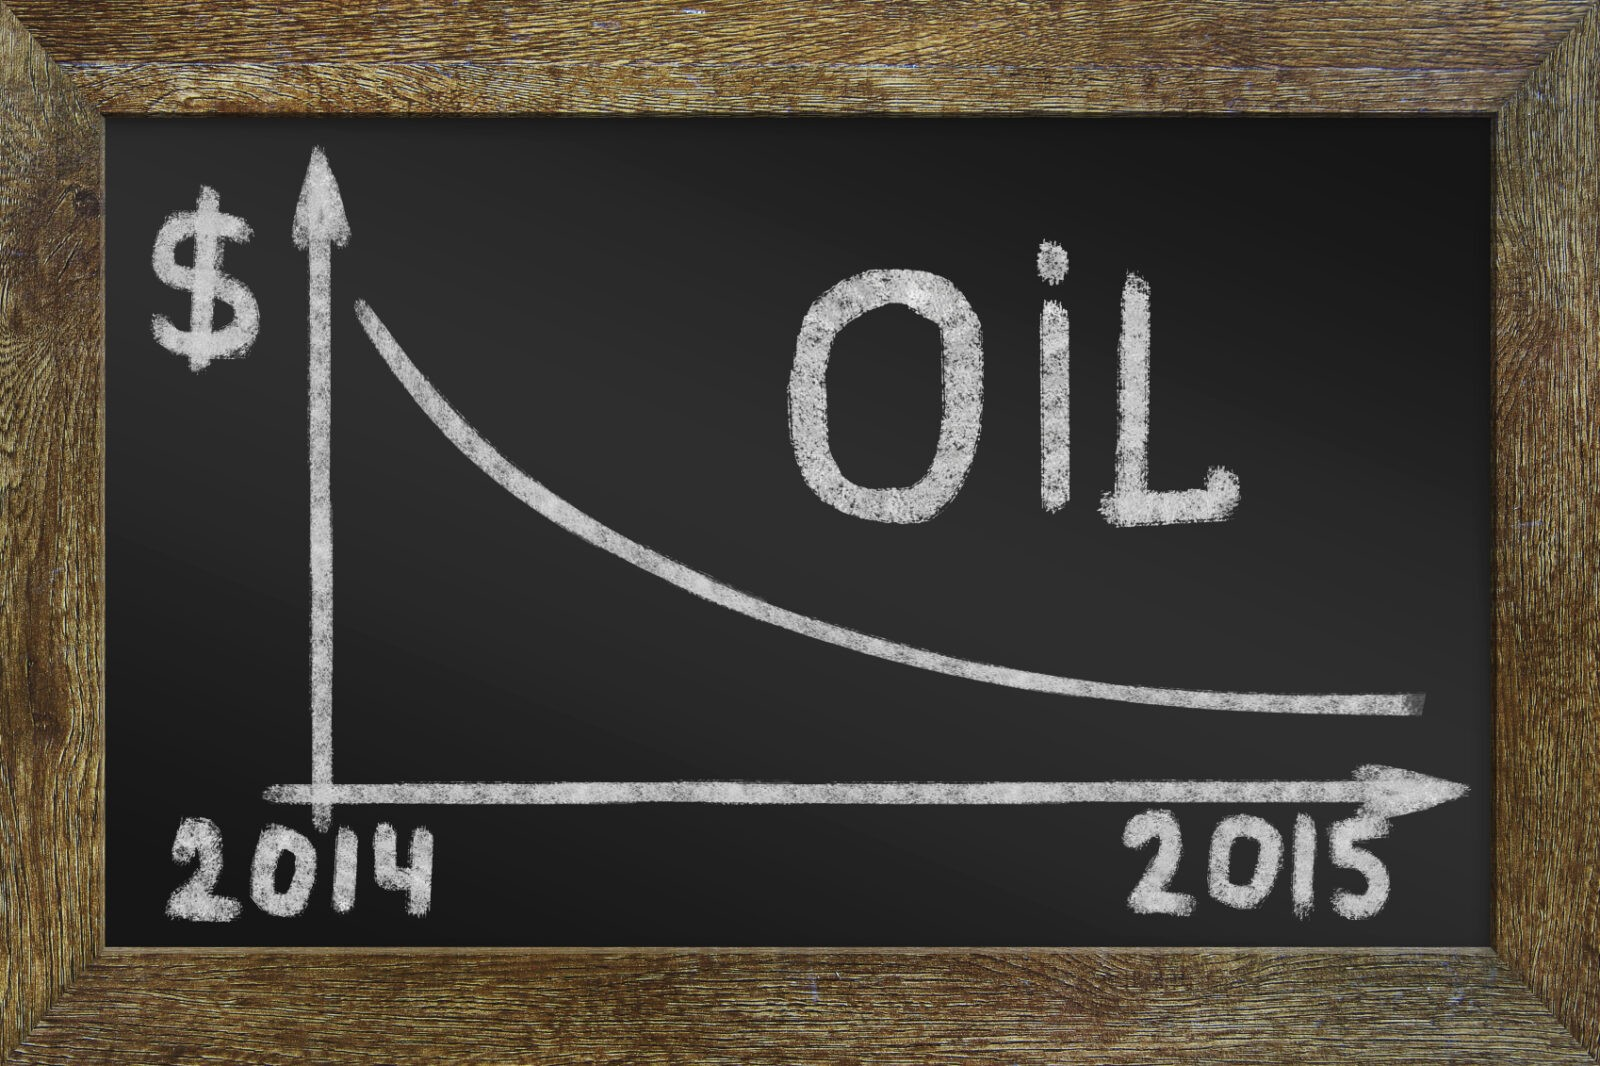 Graph showing 2015 oil collapse